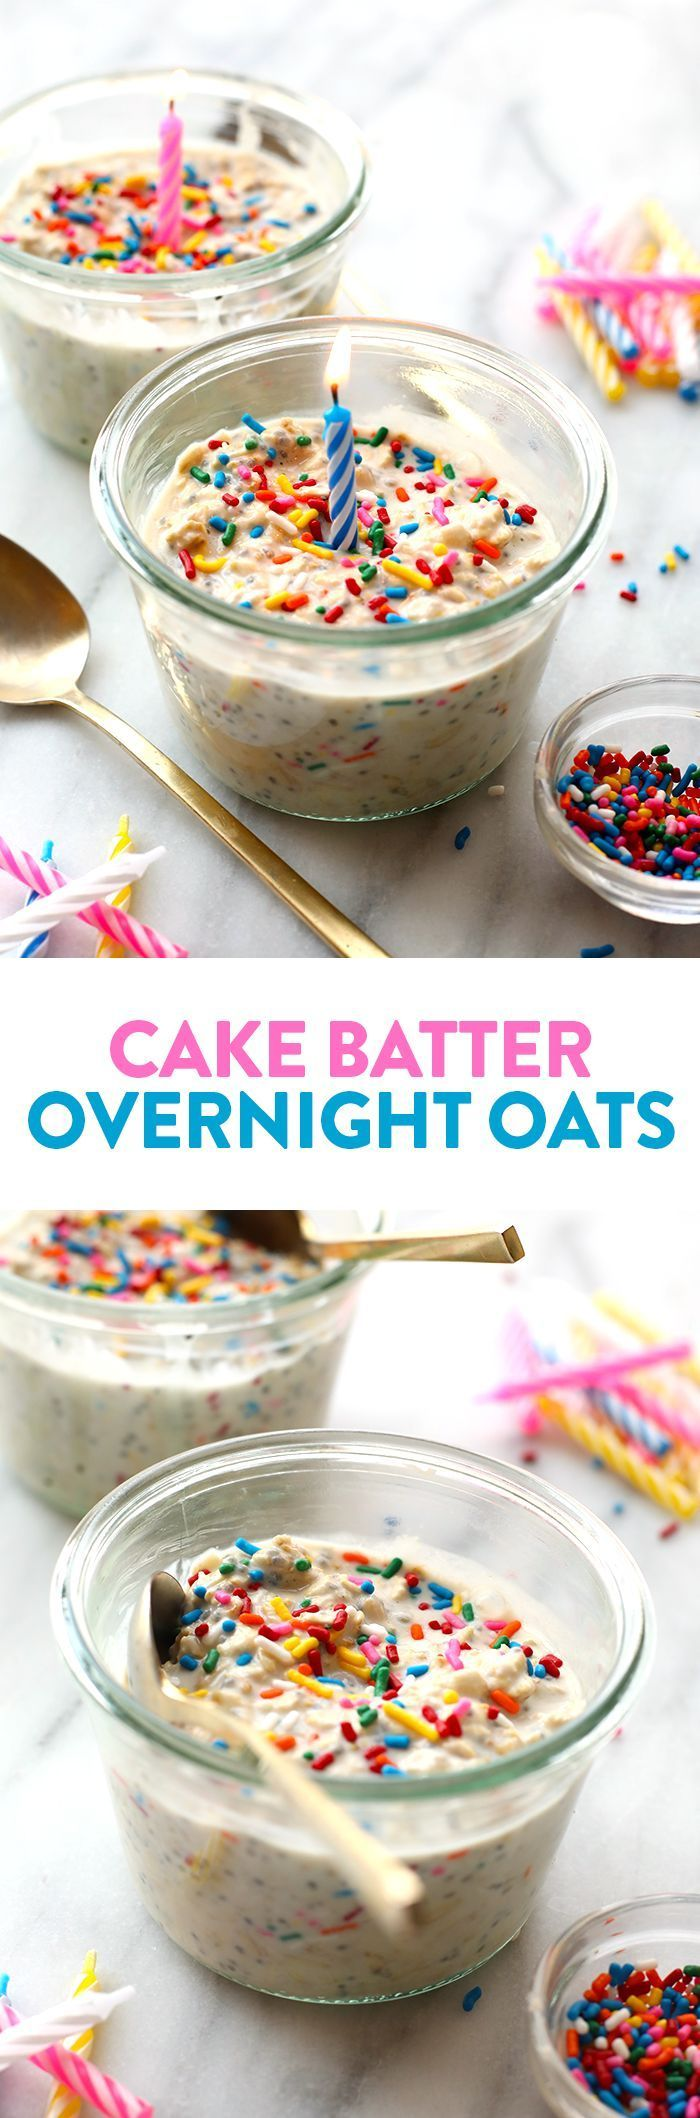 Celebrate Your Birthday The Right Way And Start Off With These HEALTHY Cake Batter Overnight